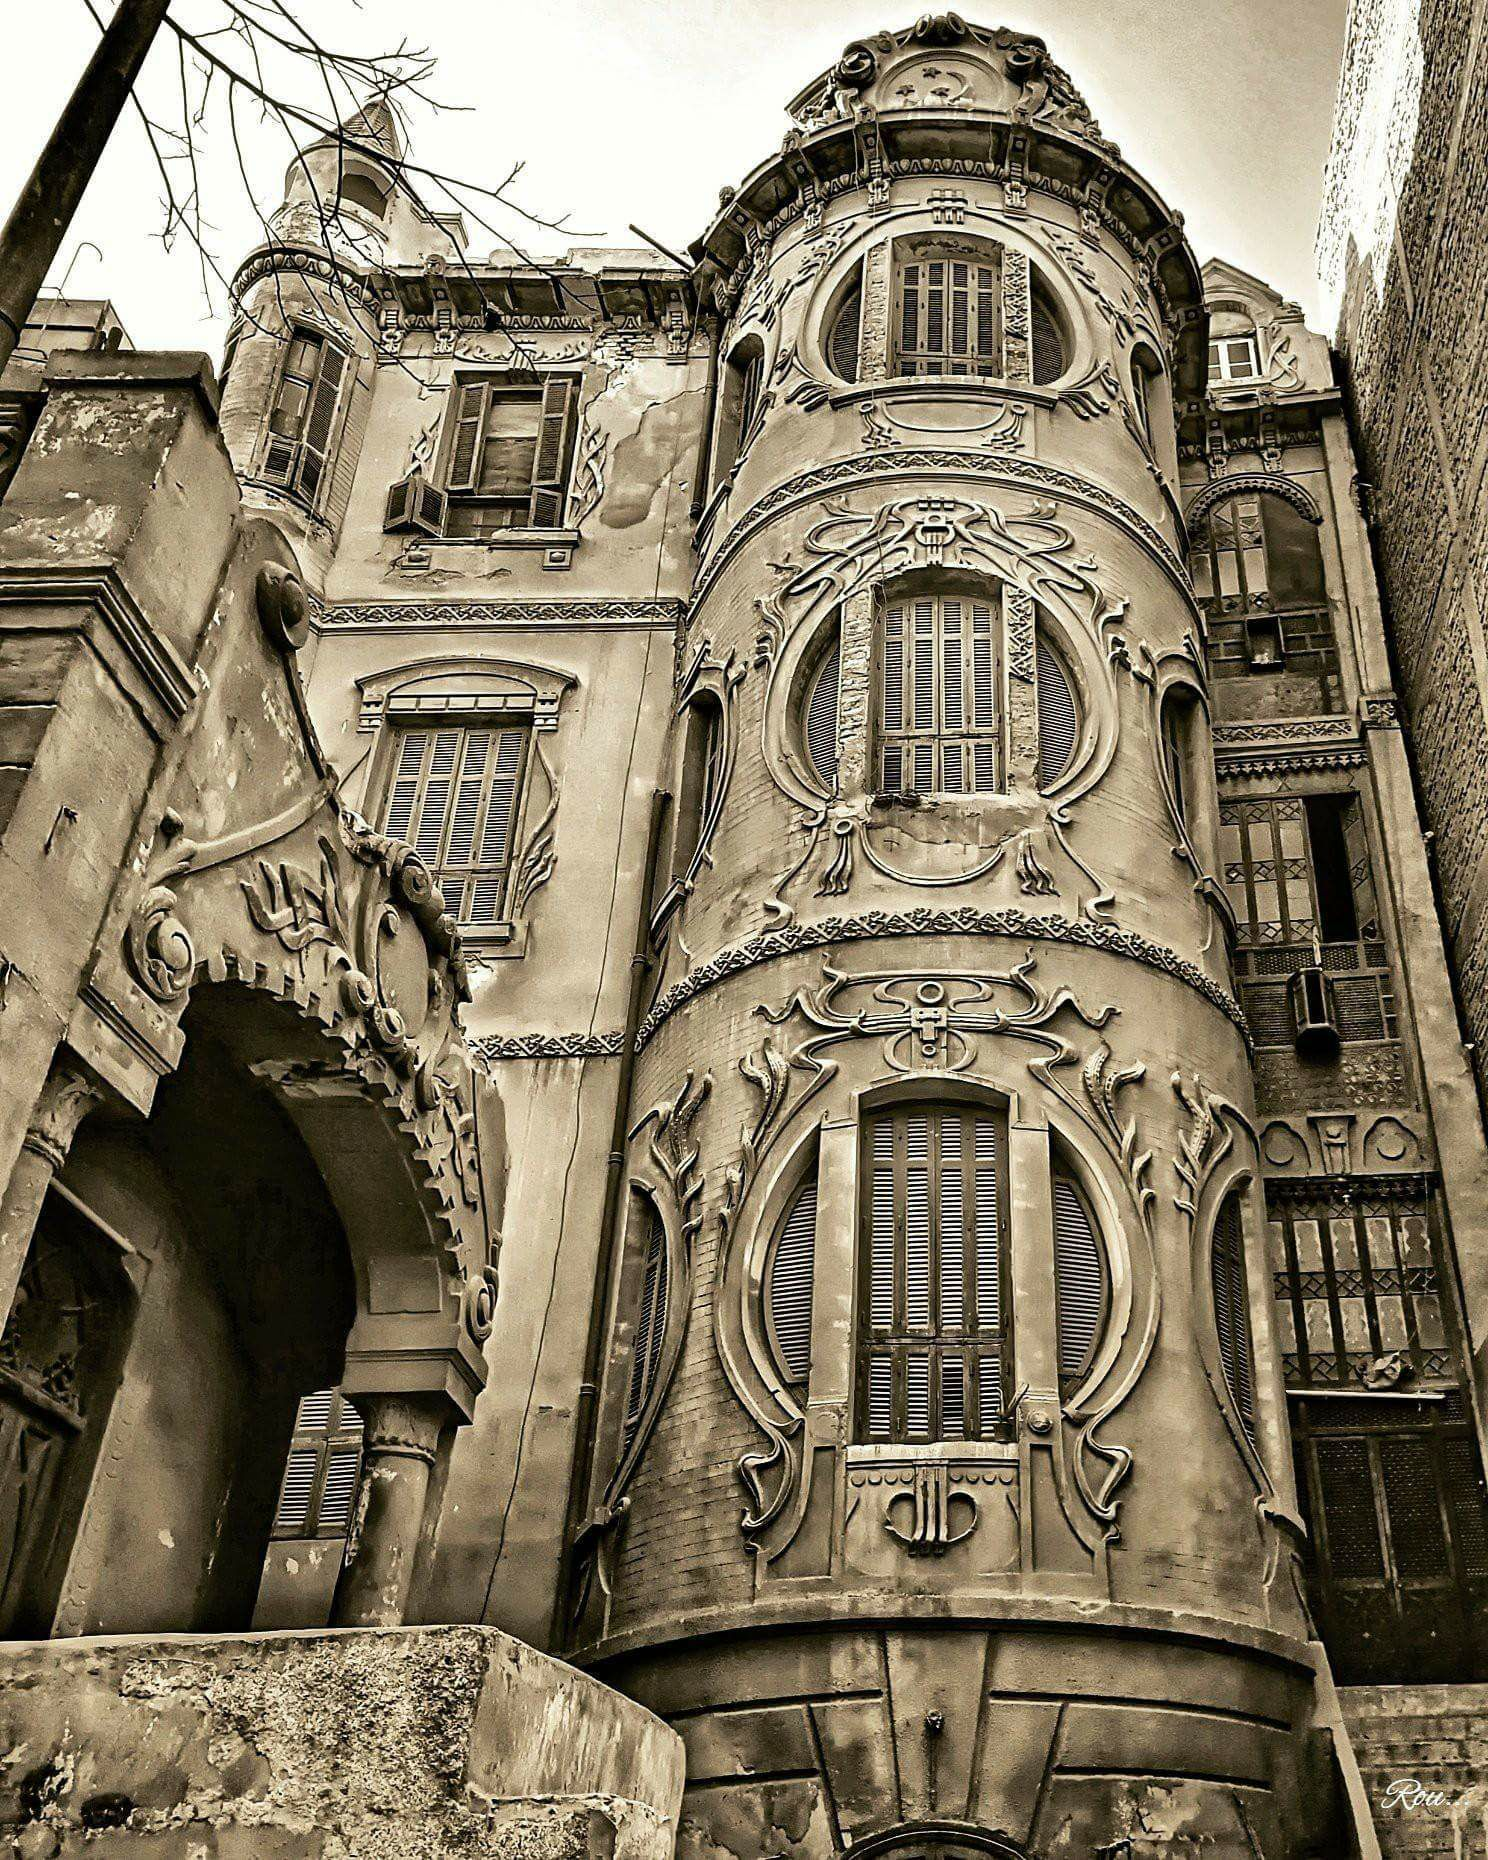 An old villa in Cairo (built circa 1900) Египет, Каир